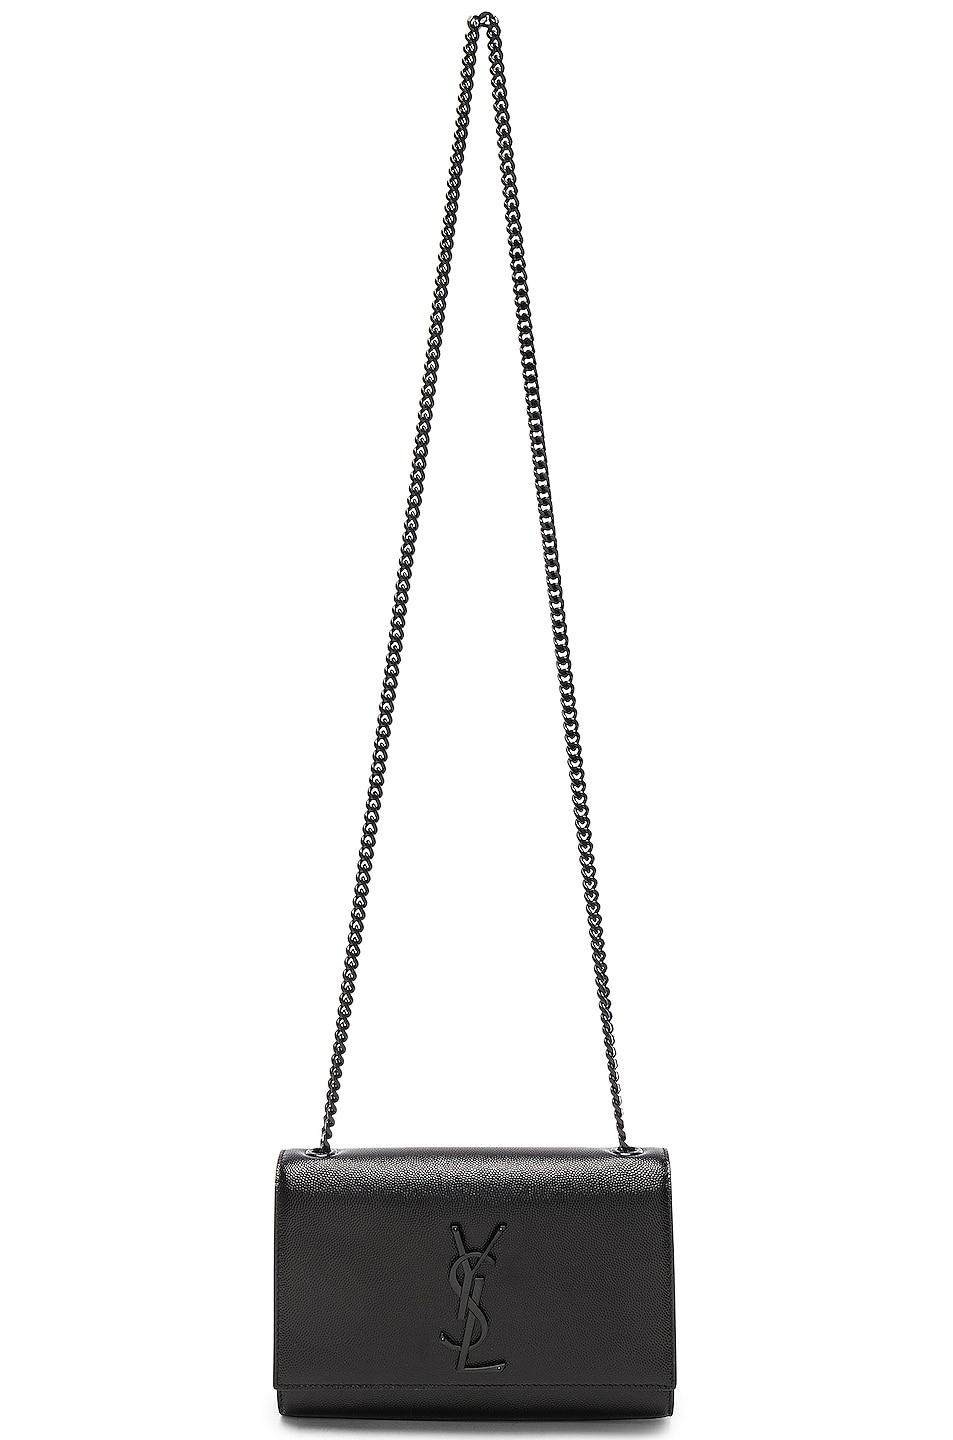 Image 6 of Saint Laurent Small Monogramme Kate Chain Bag in Black & Black